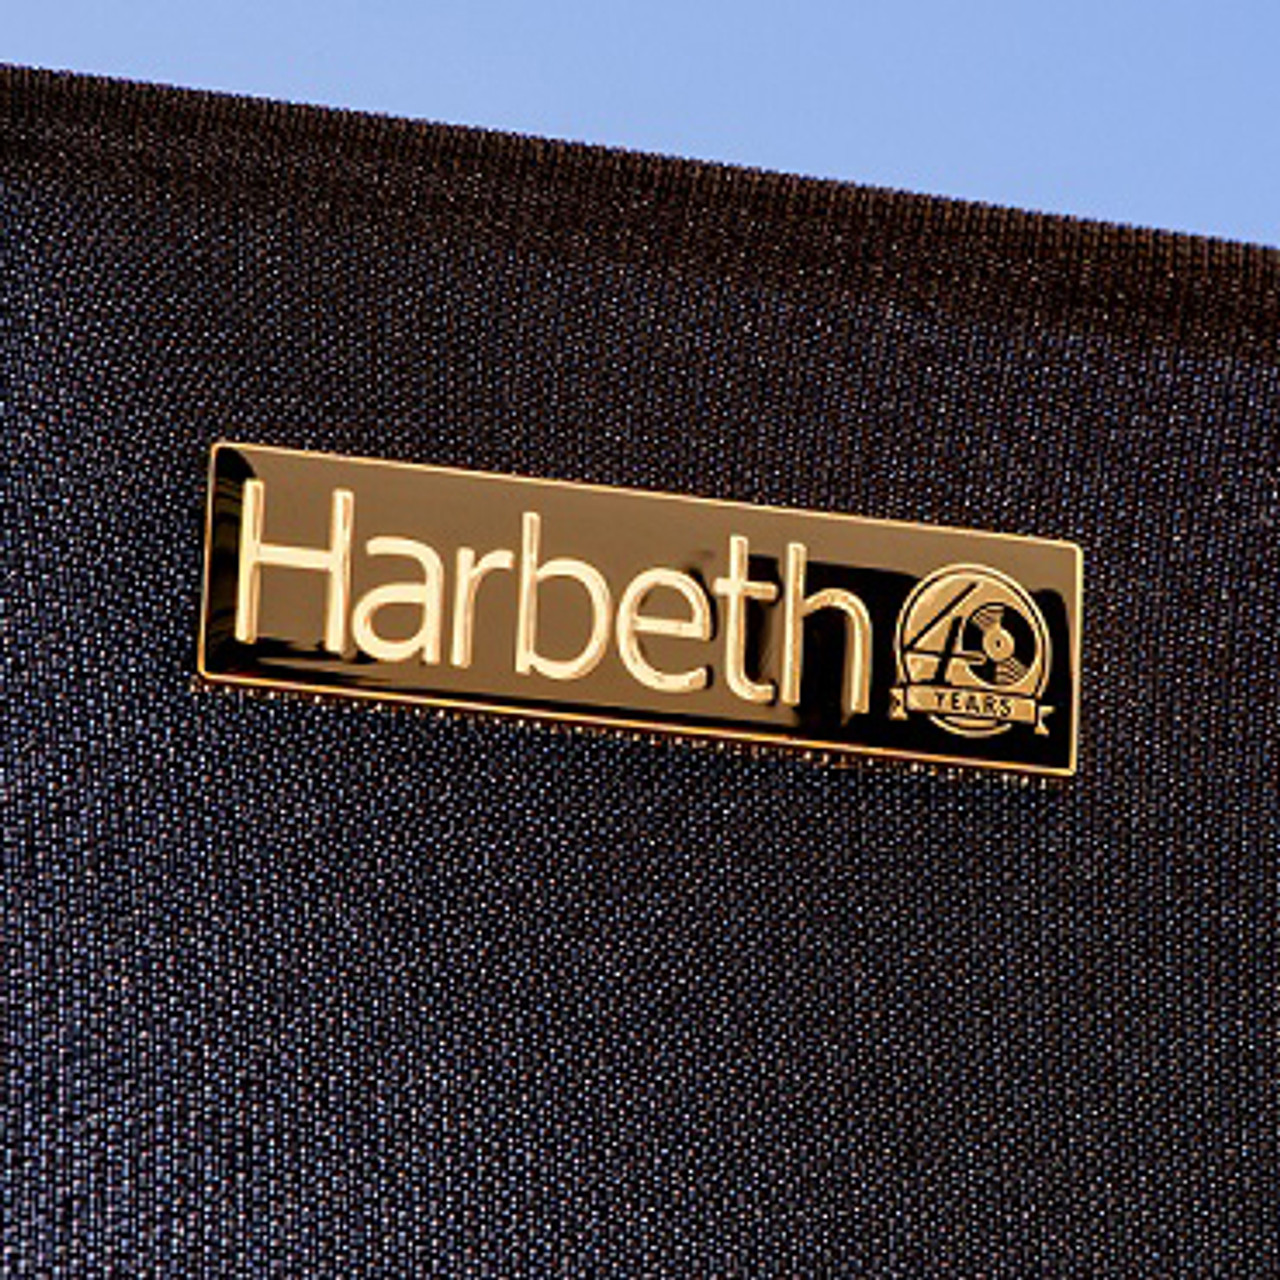 Harbeth 40th Anniversary Monitor 40.2 speakers